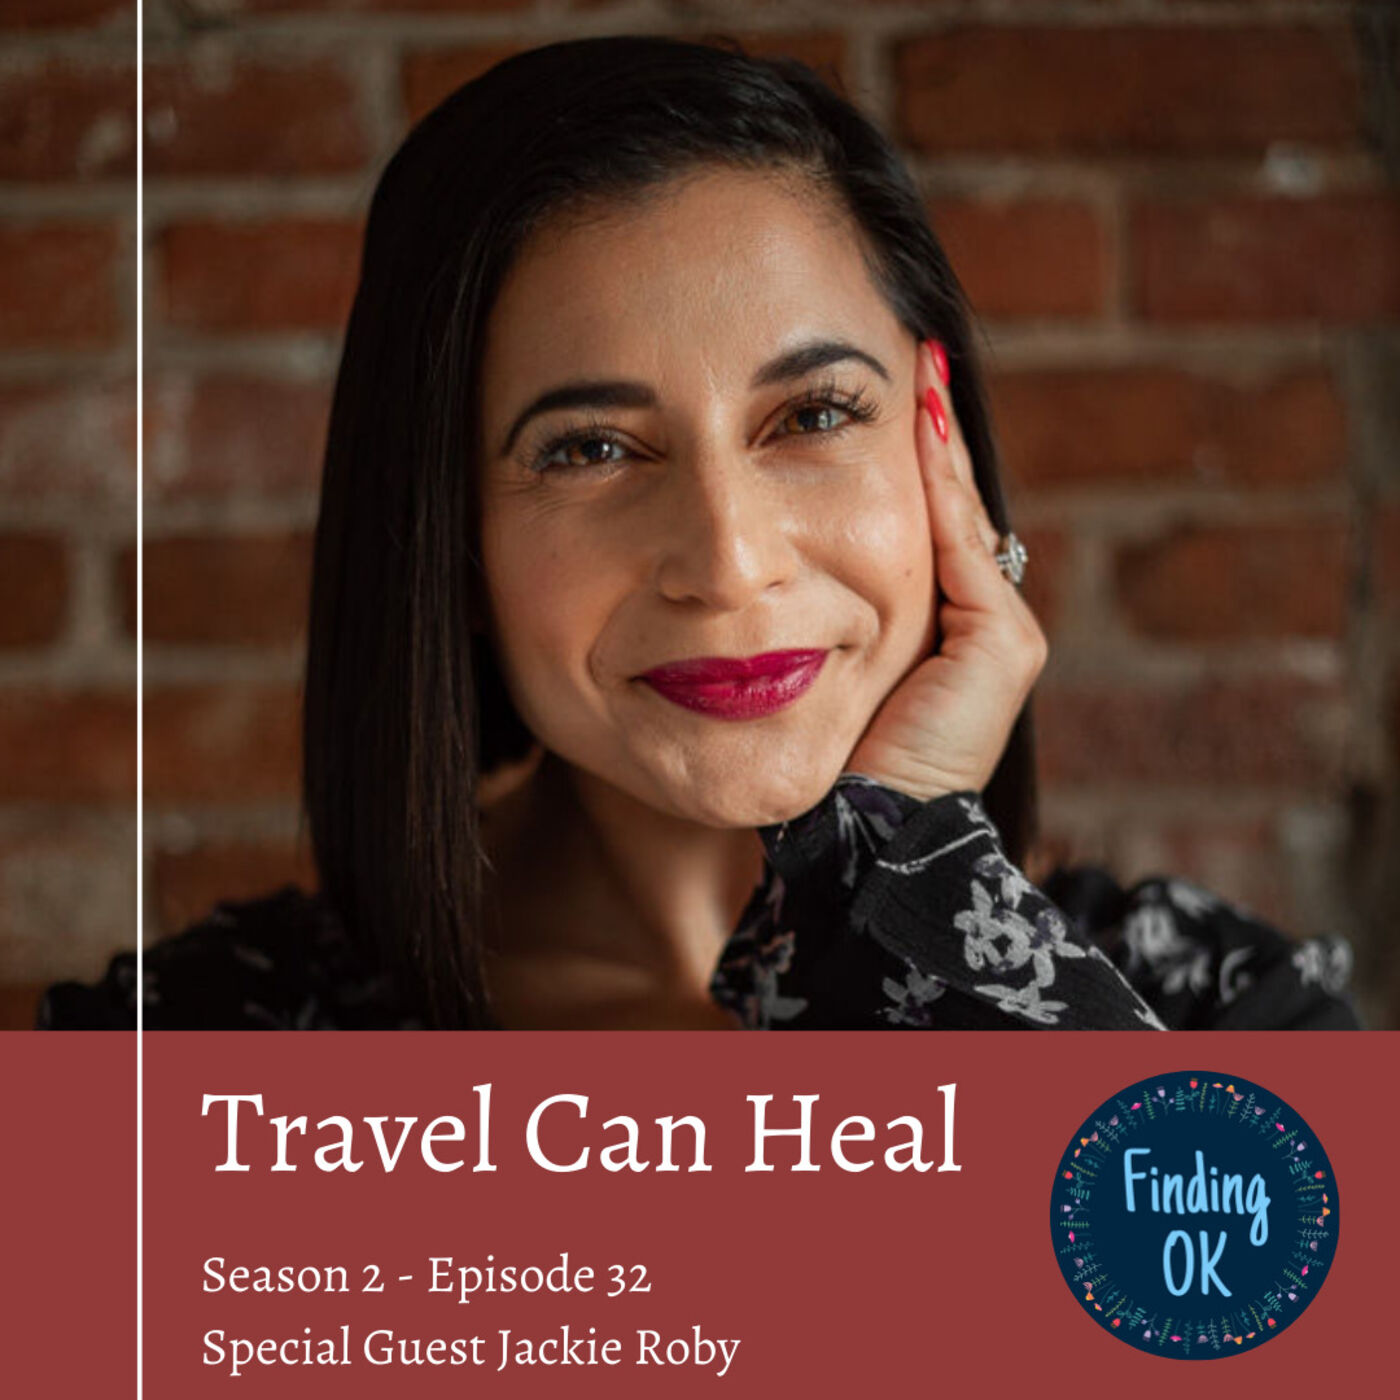 Travel Can Heal